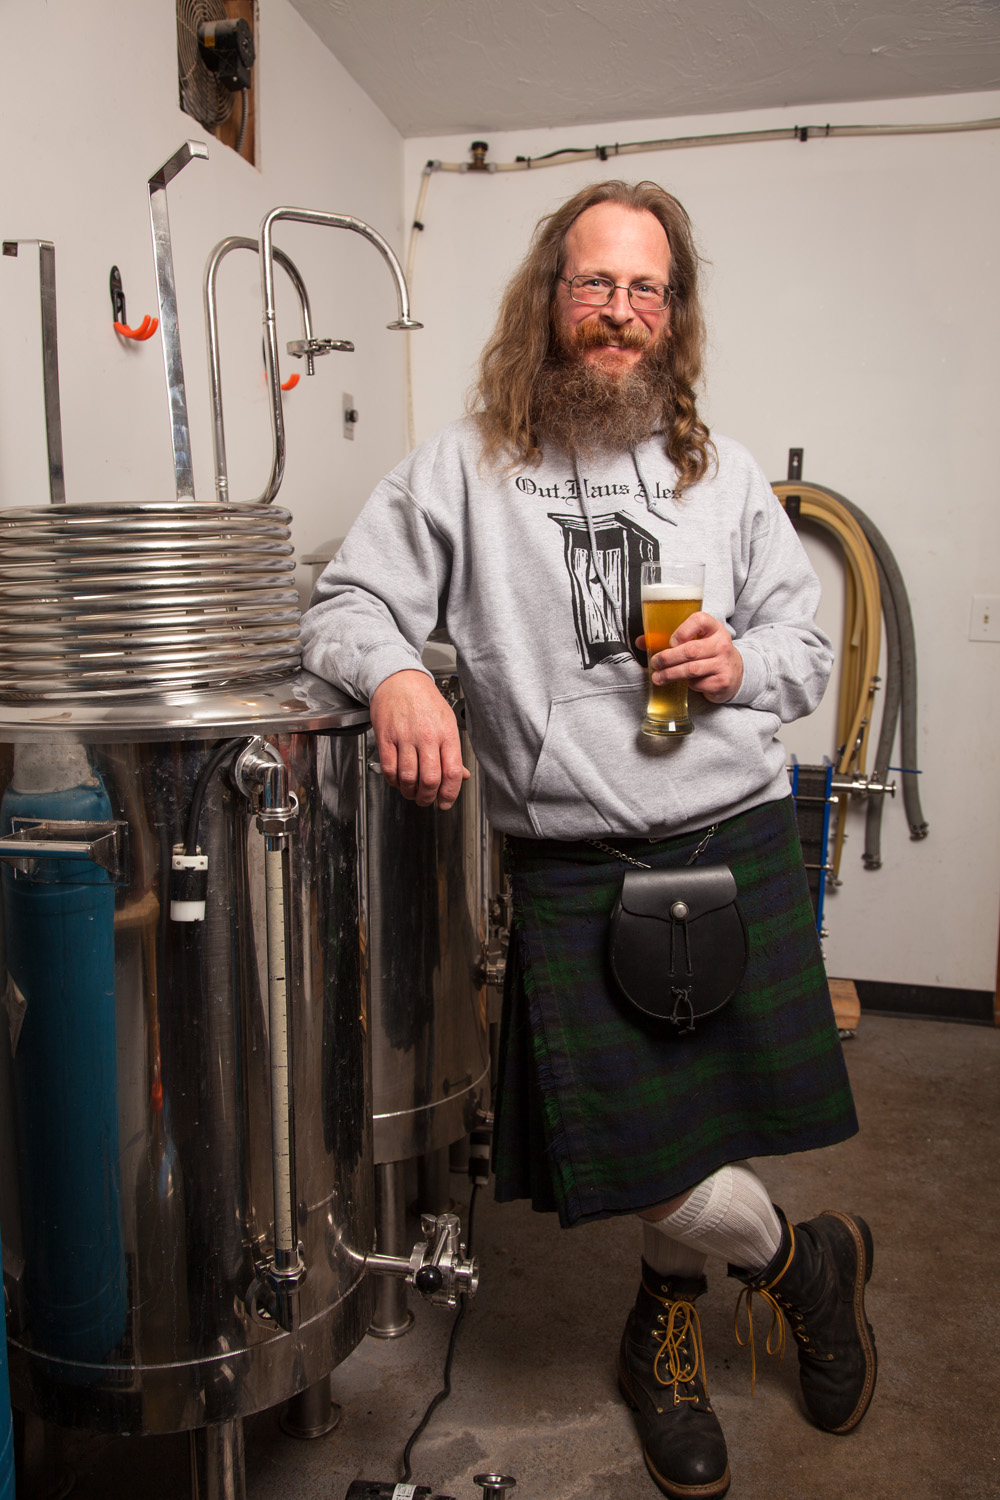 Tom Albright, Brewmaster at Out Haus Ales Northwood, NH Established in 2013